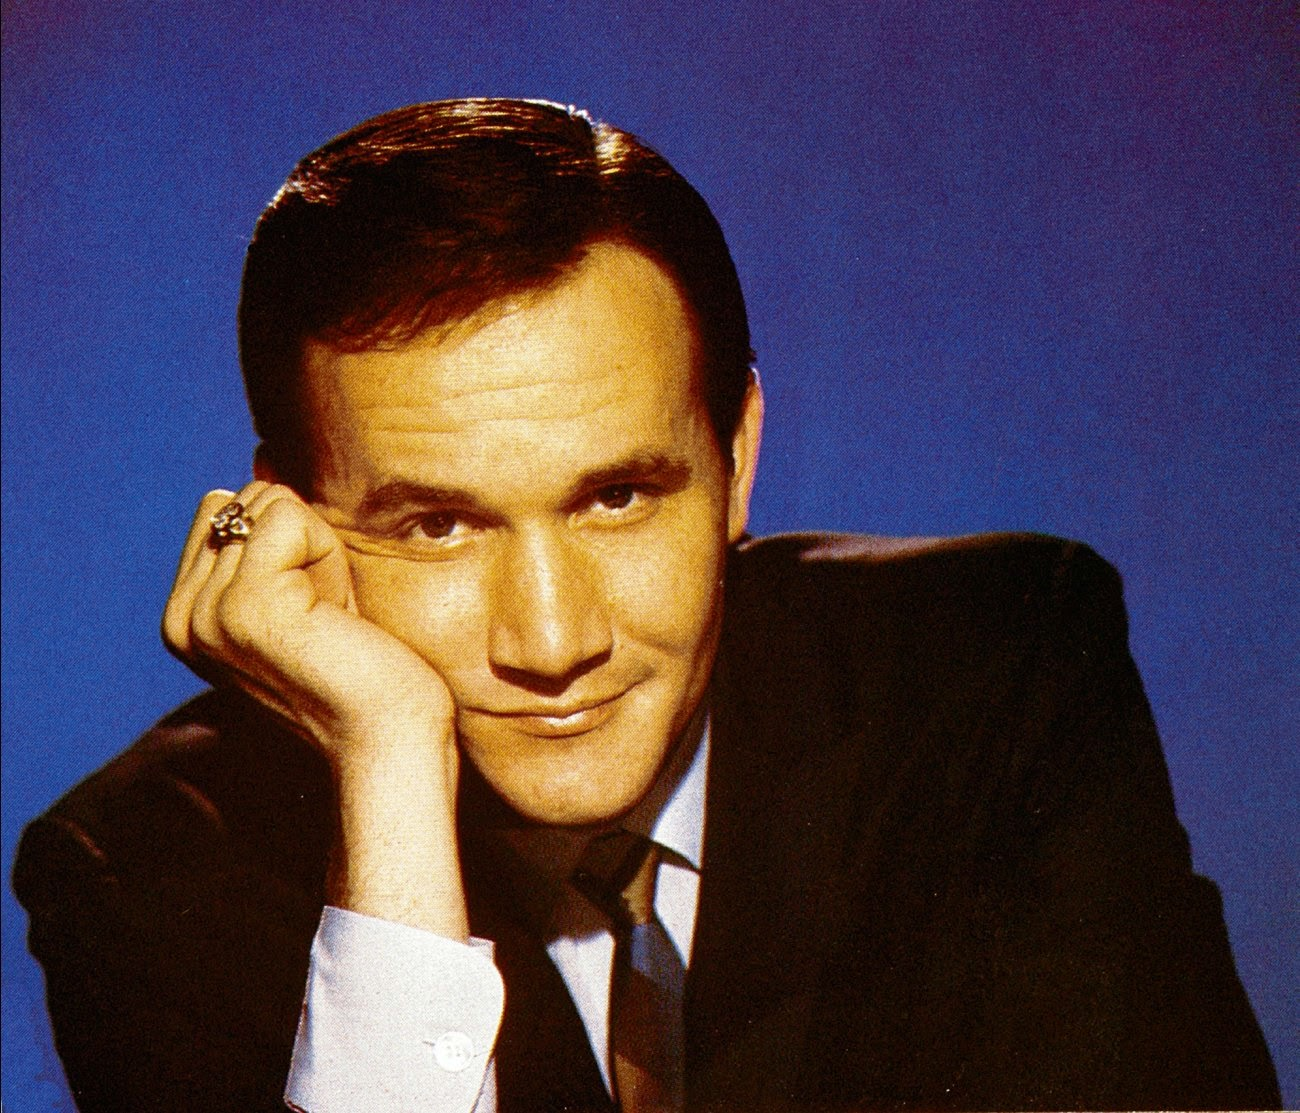 Roger miller was an american singer songwriter musician and actor